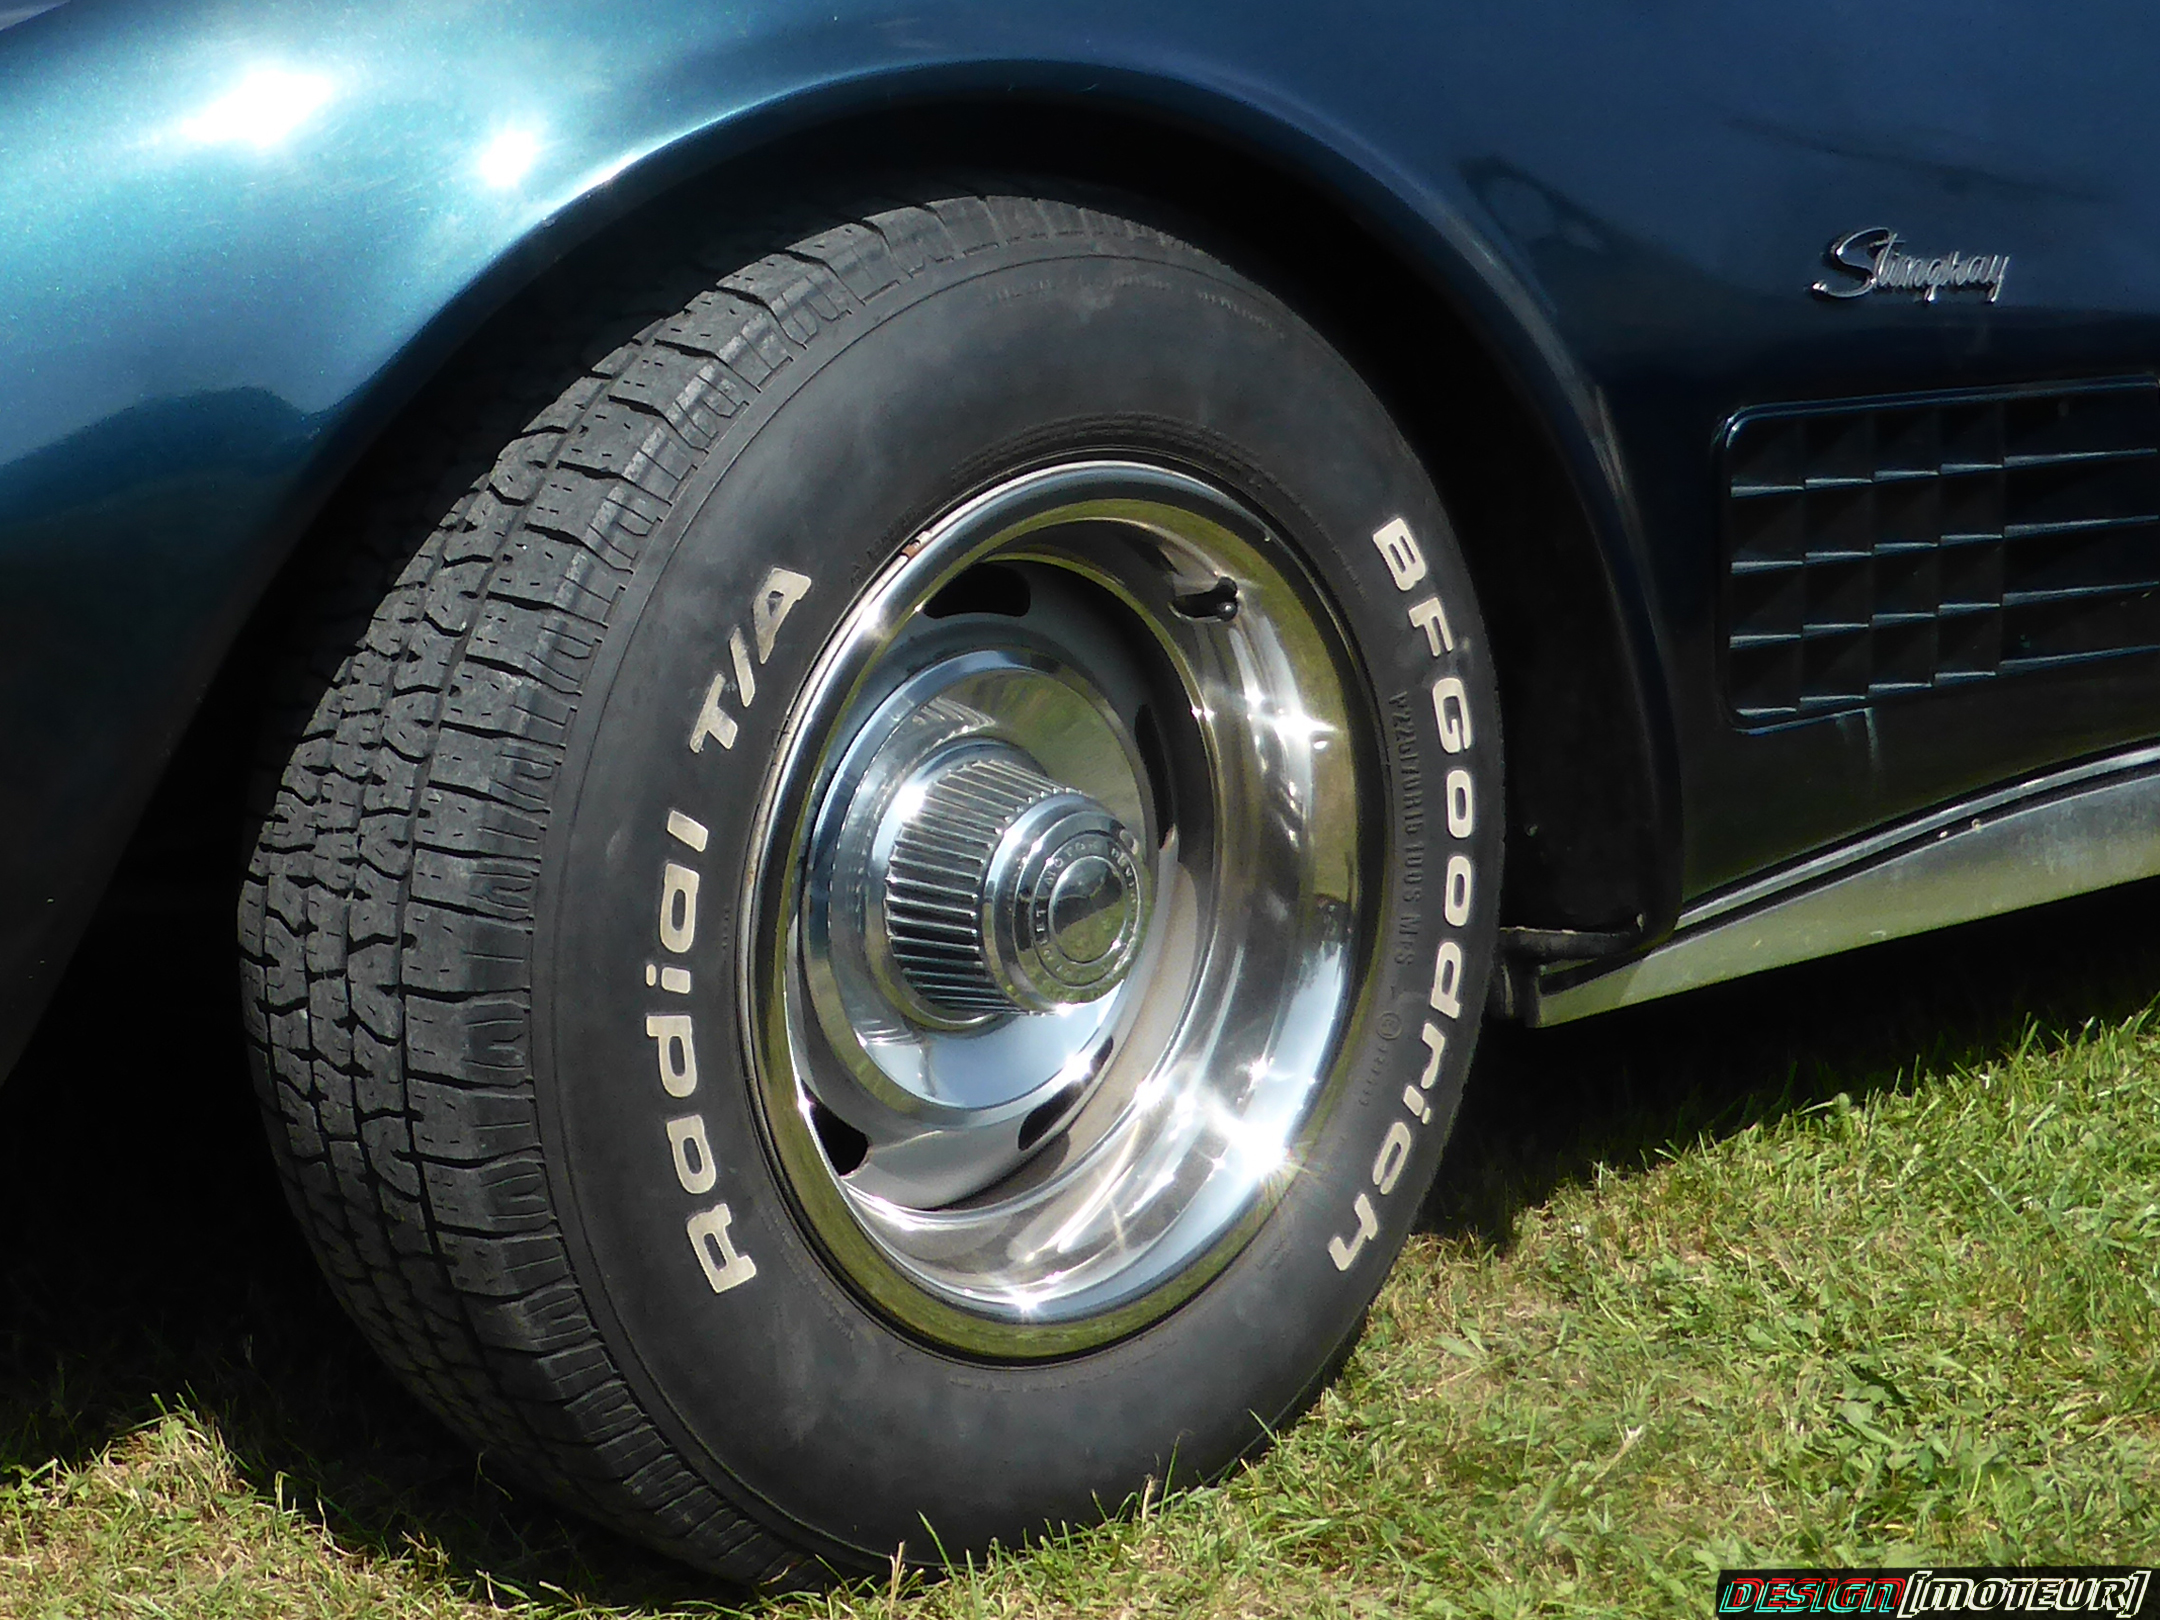 Chevrolet Corvette C3 Stingray - front wheel - 2019 - Breizh Pickers - parking expo - photo ELJ DESIGNMOTEUR